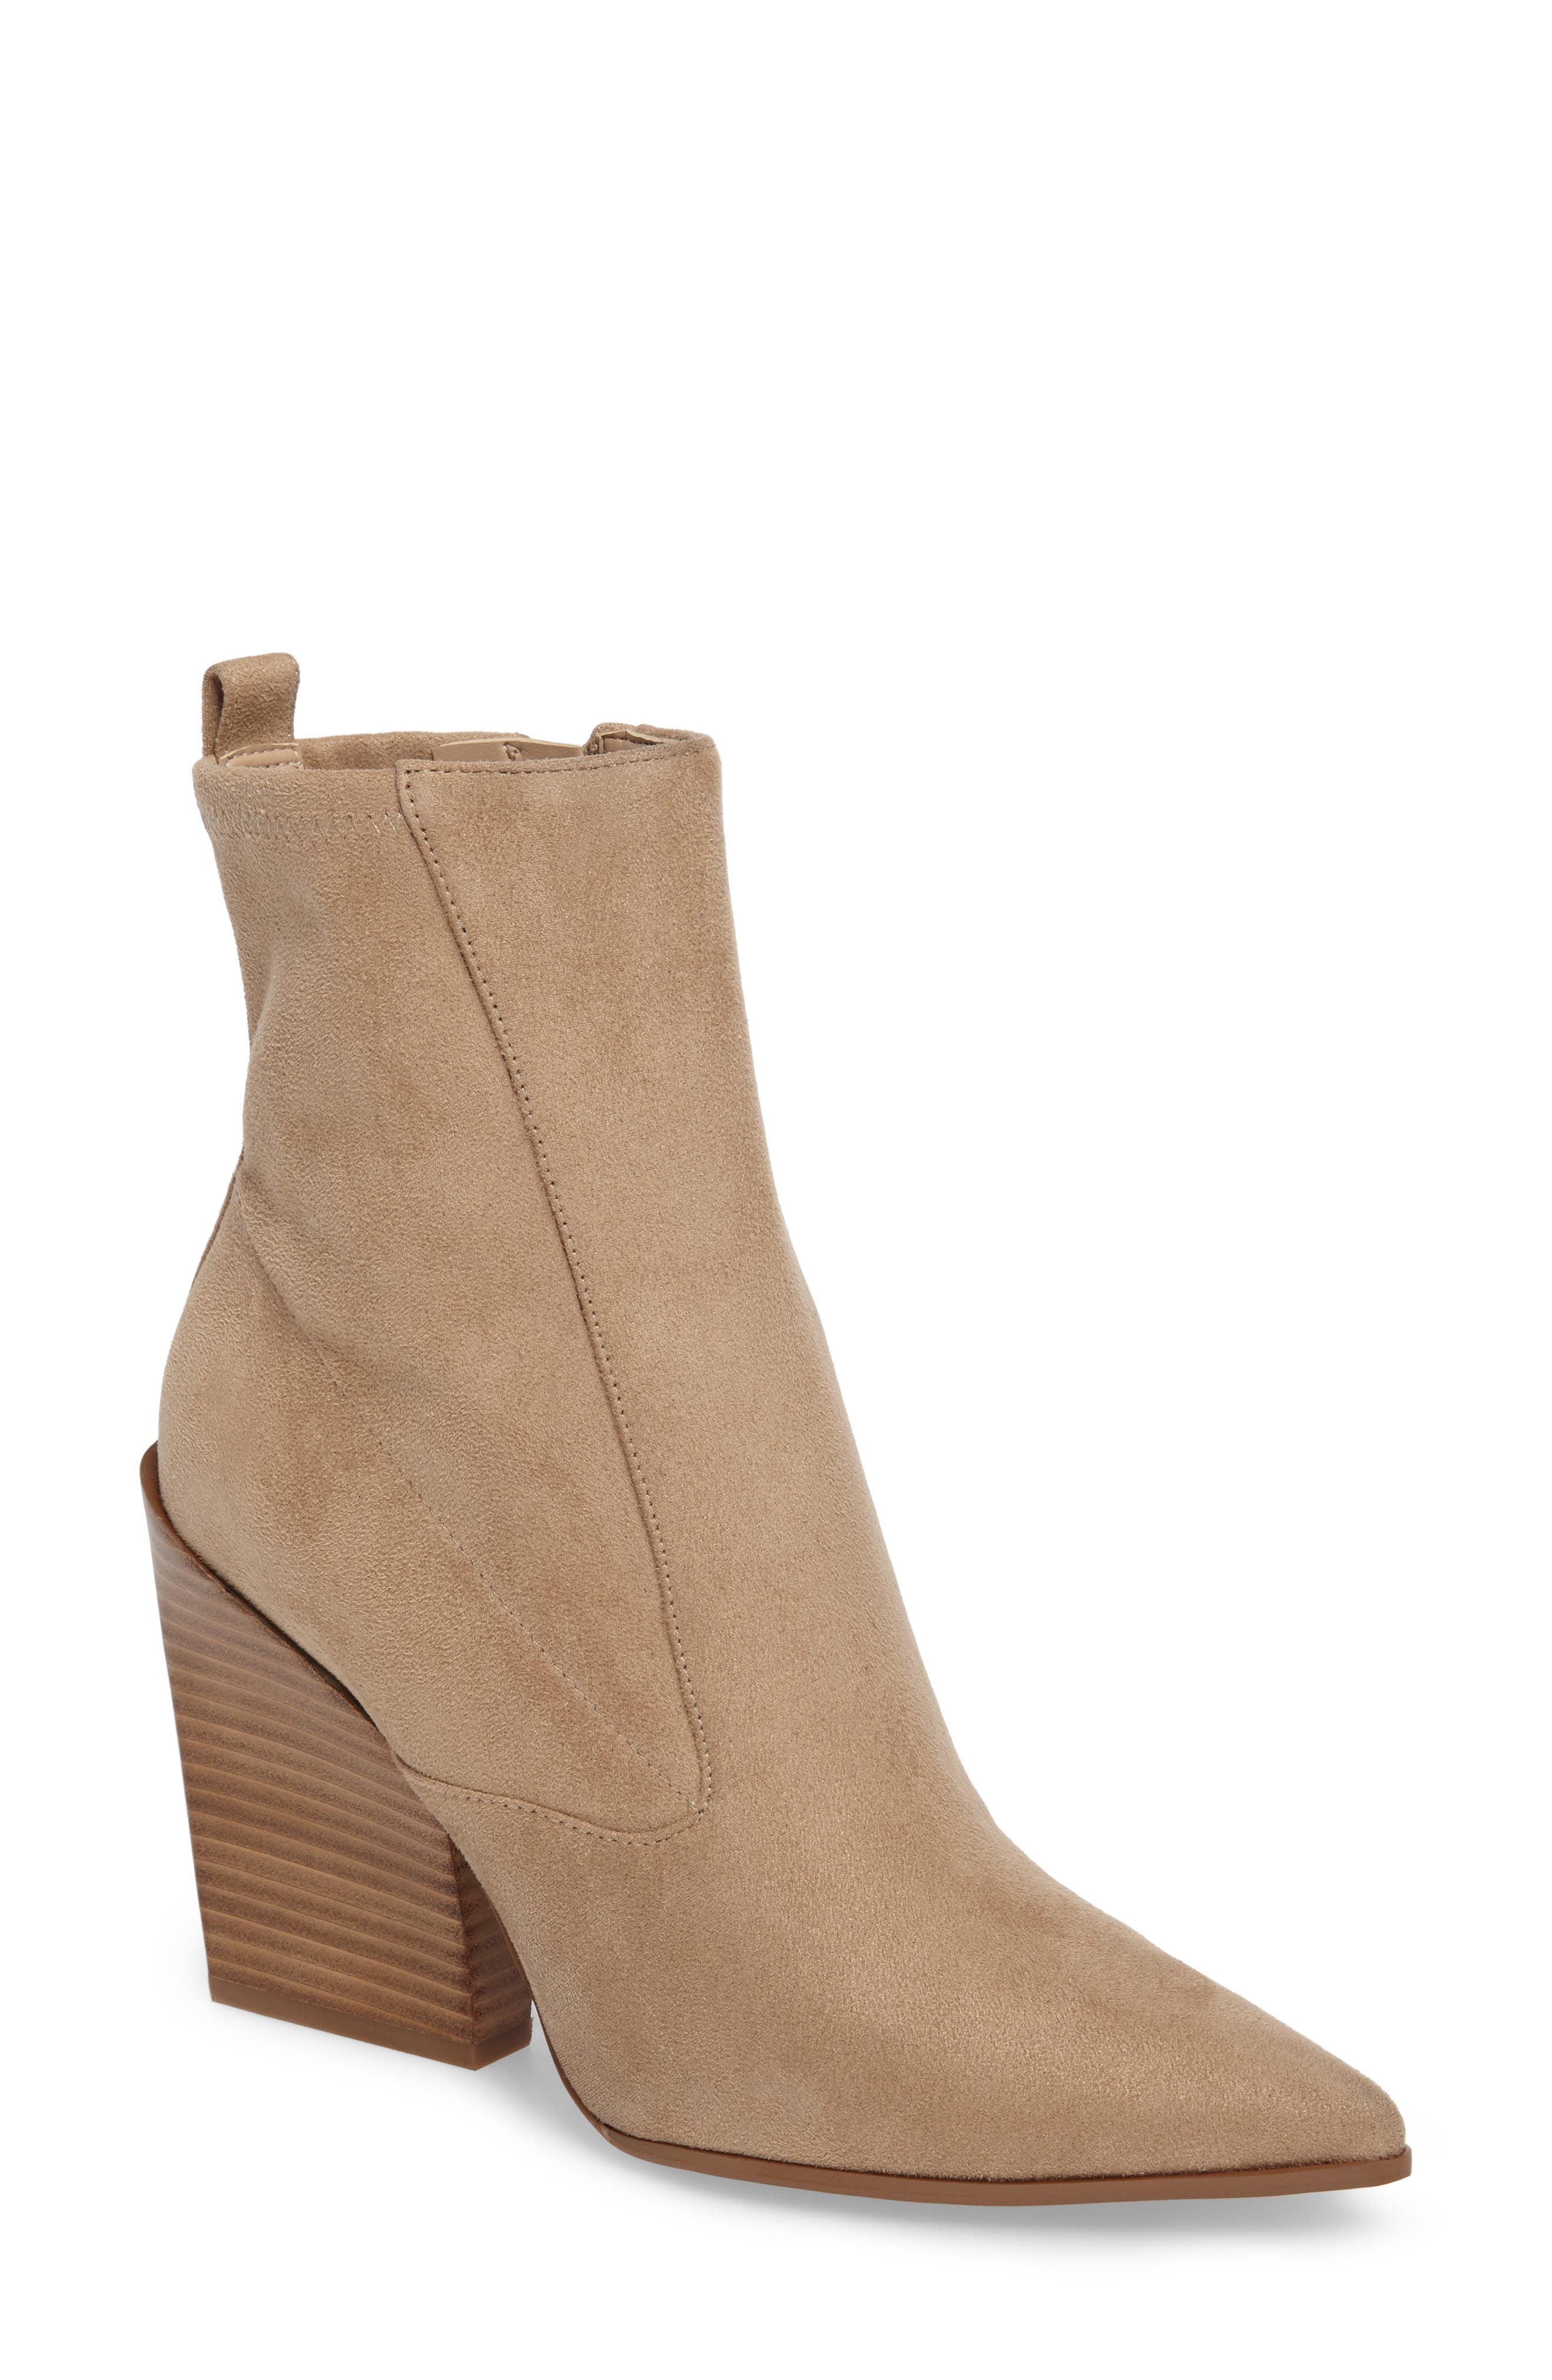 KENDALL + KYLIE Fallyn Pointed Toe Bootie